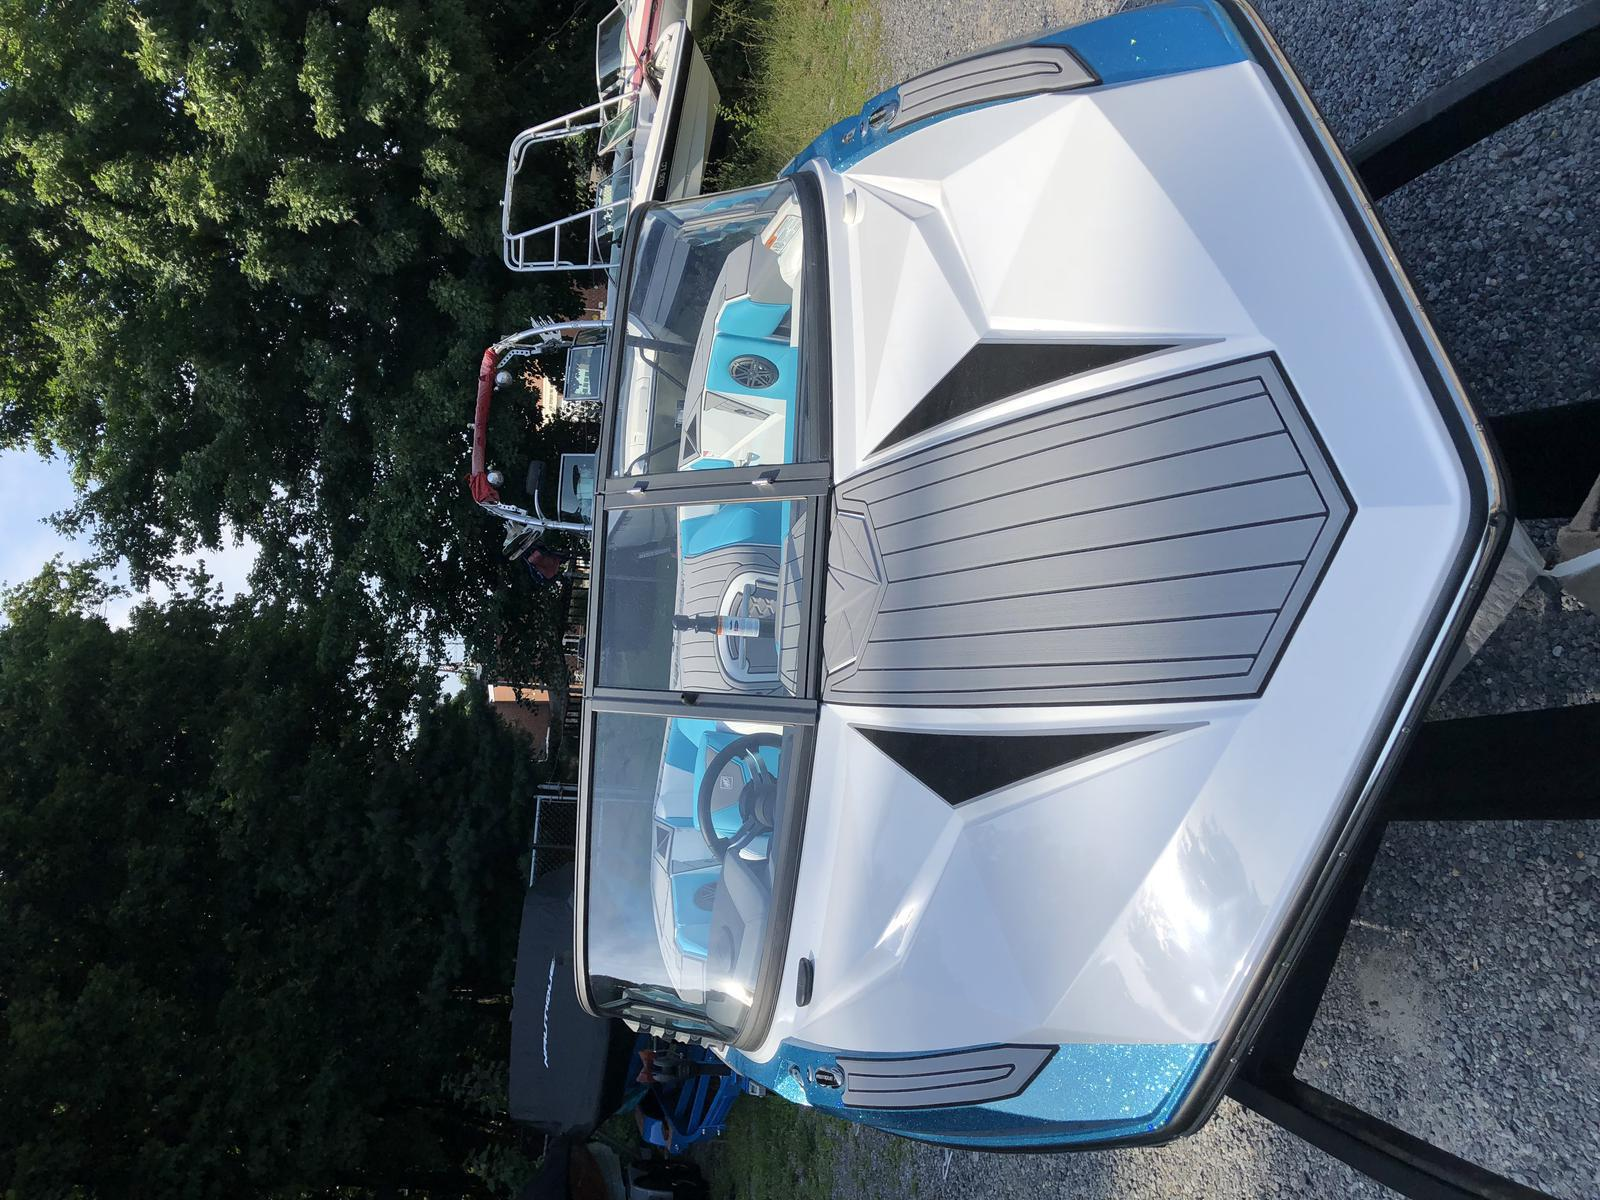 2019 Nautique Ski Nautique for sale in Calverton, NY  Island